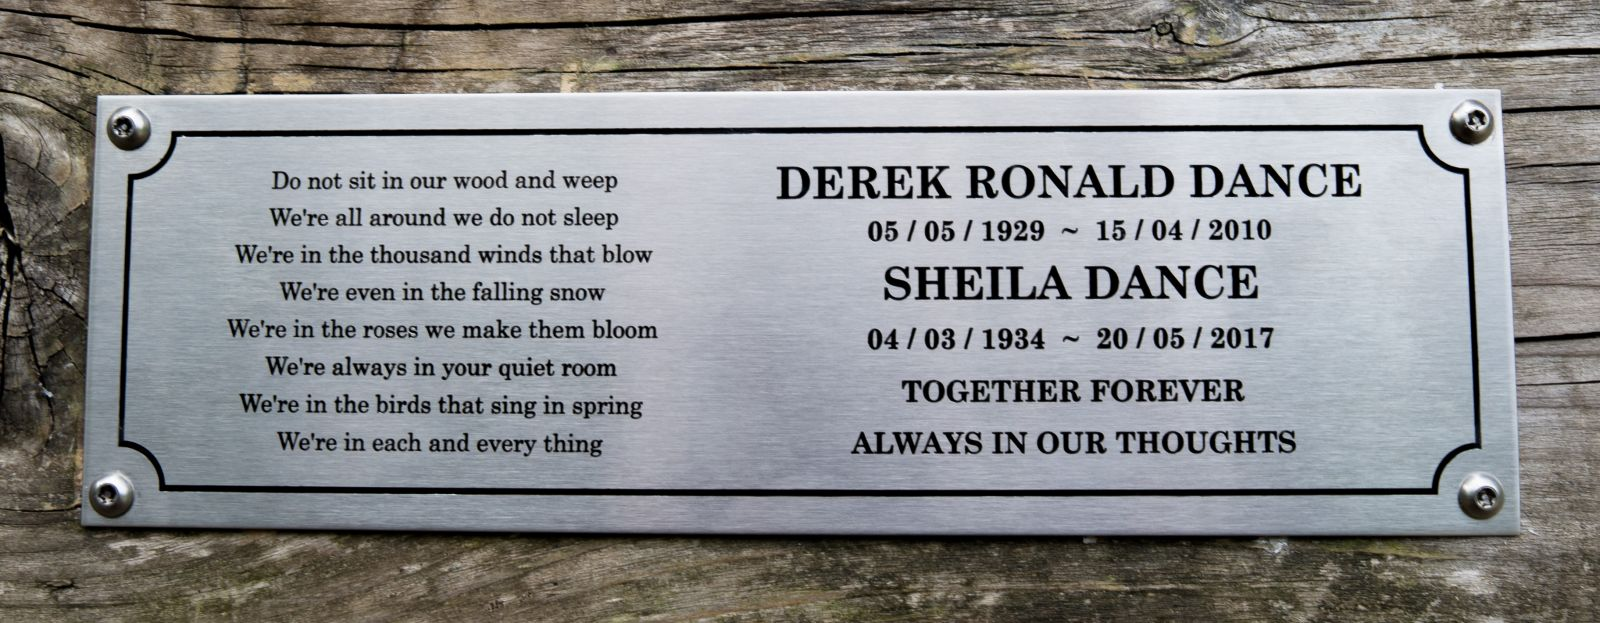 Stainless Steel Memorial Bench Plaque